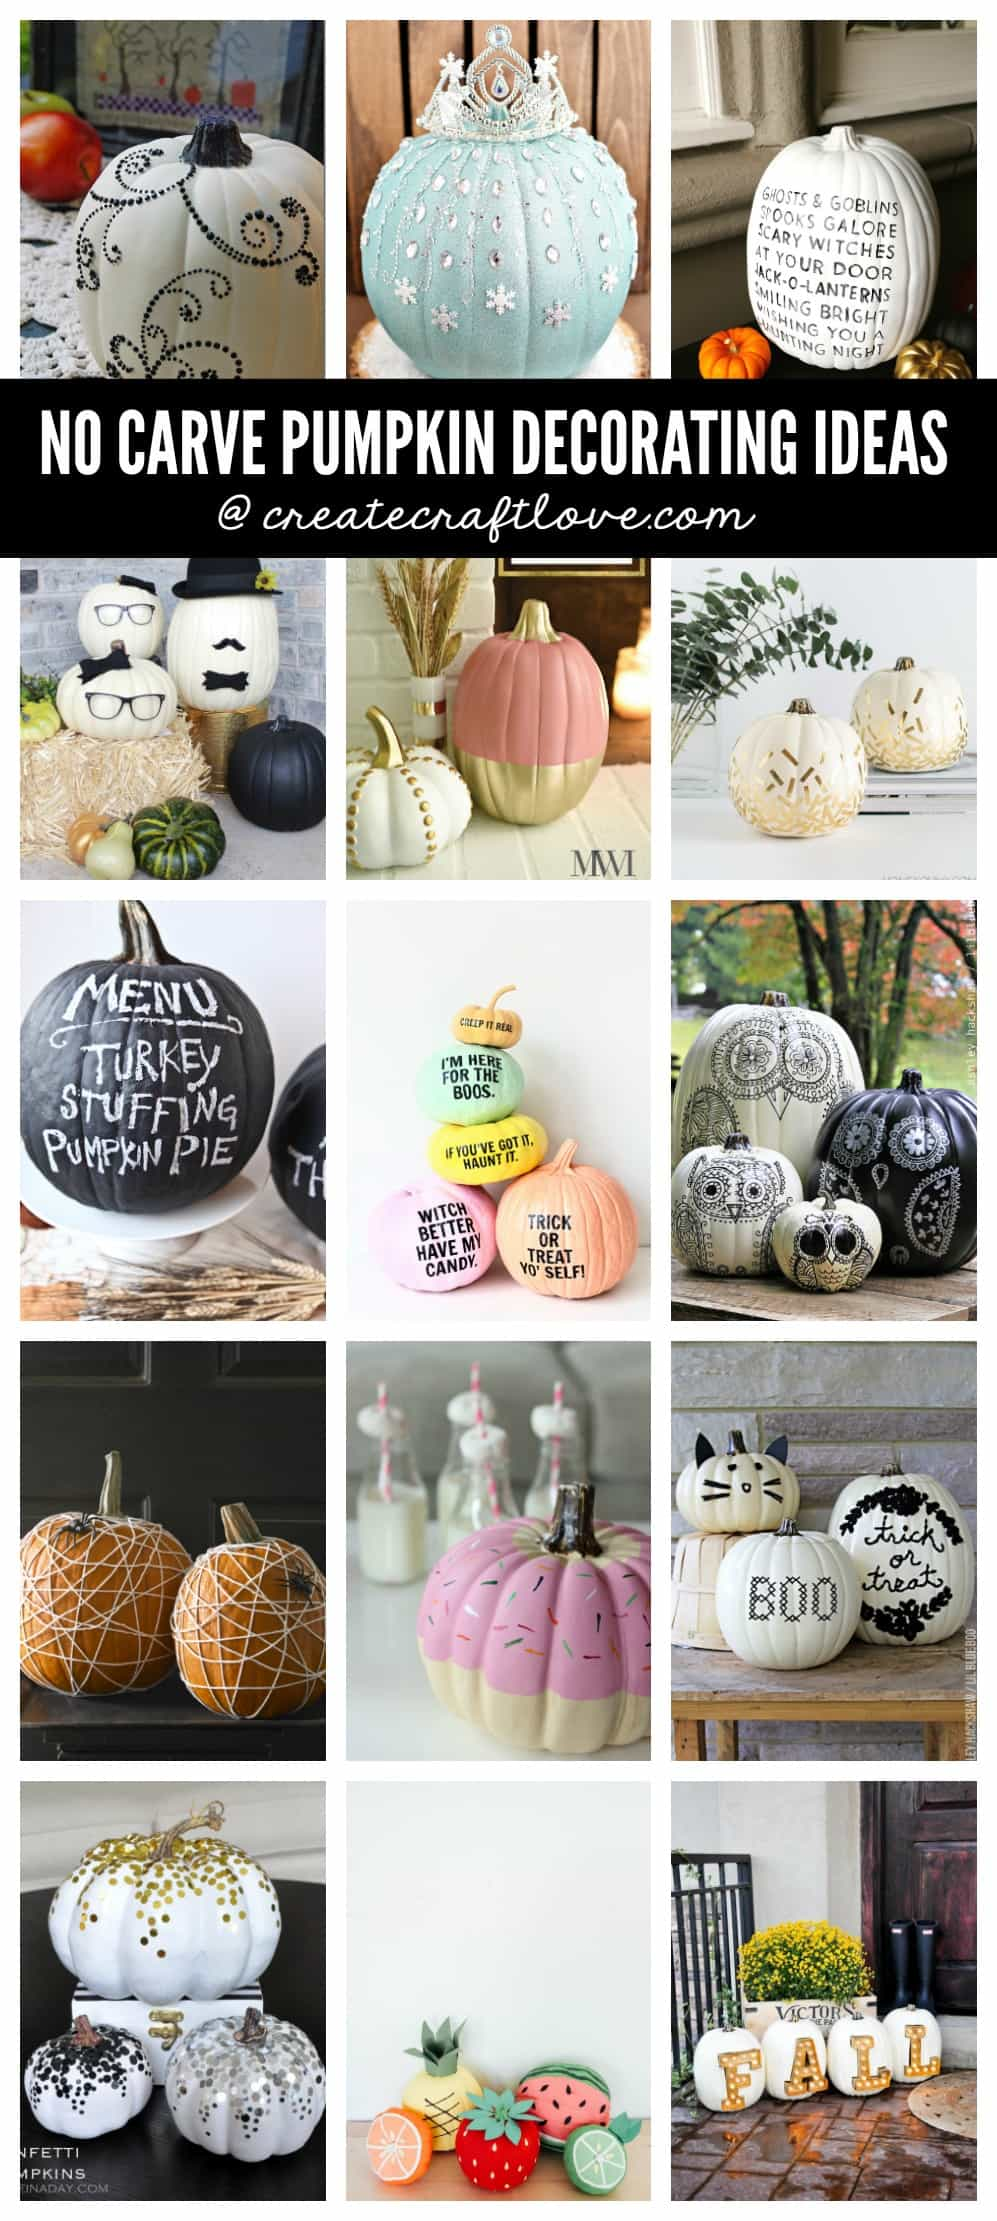 Here are some of the best No Carve Pumpkin Decorating Ideas around the blogosphere!